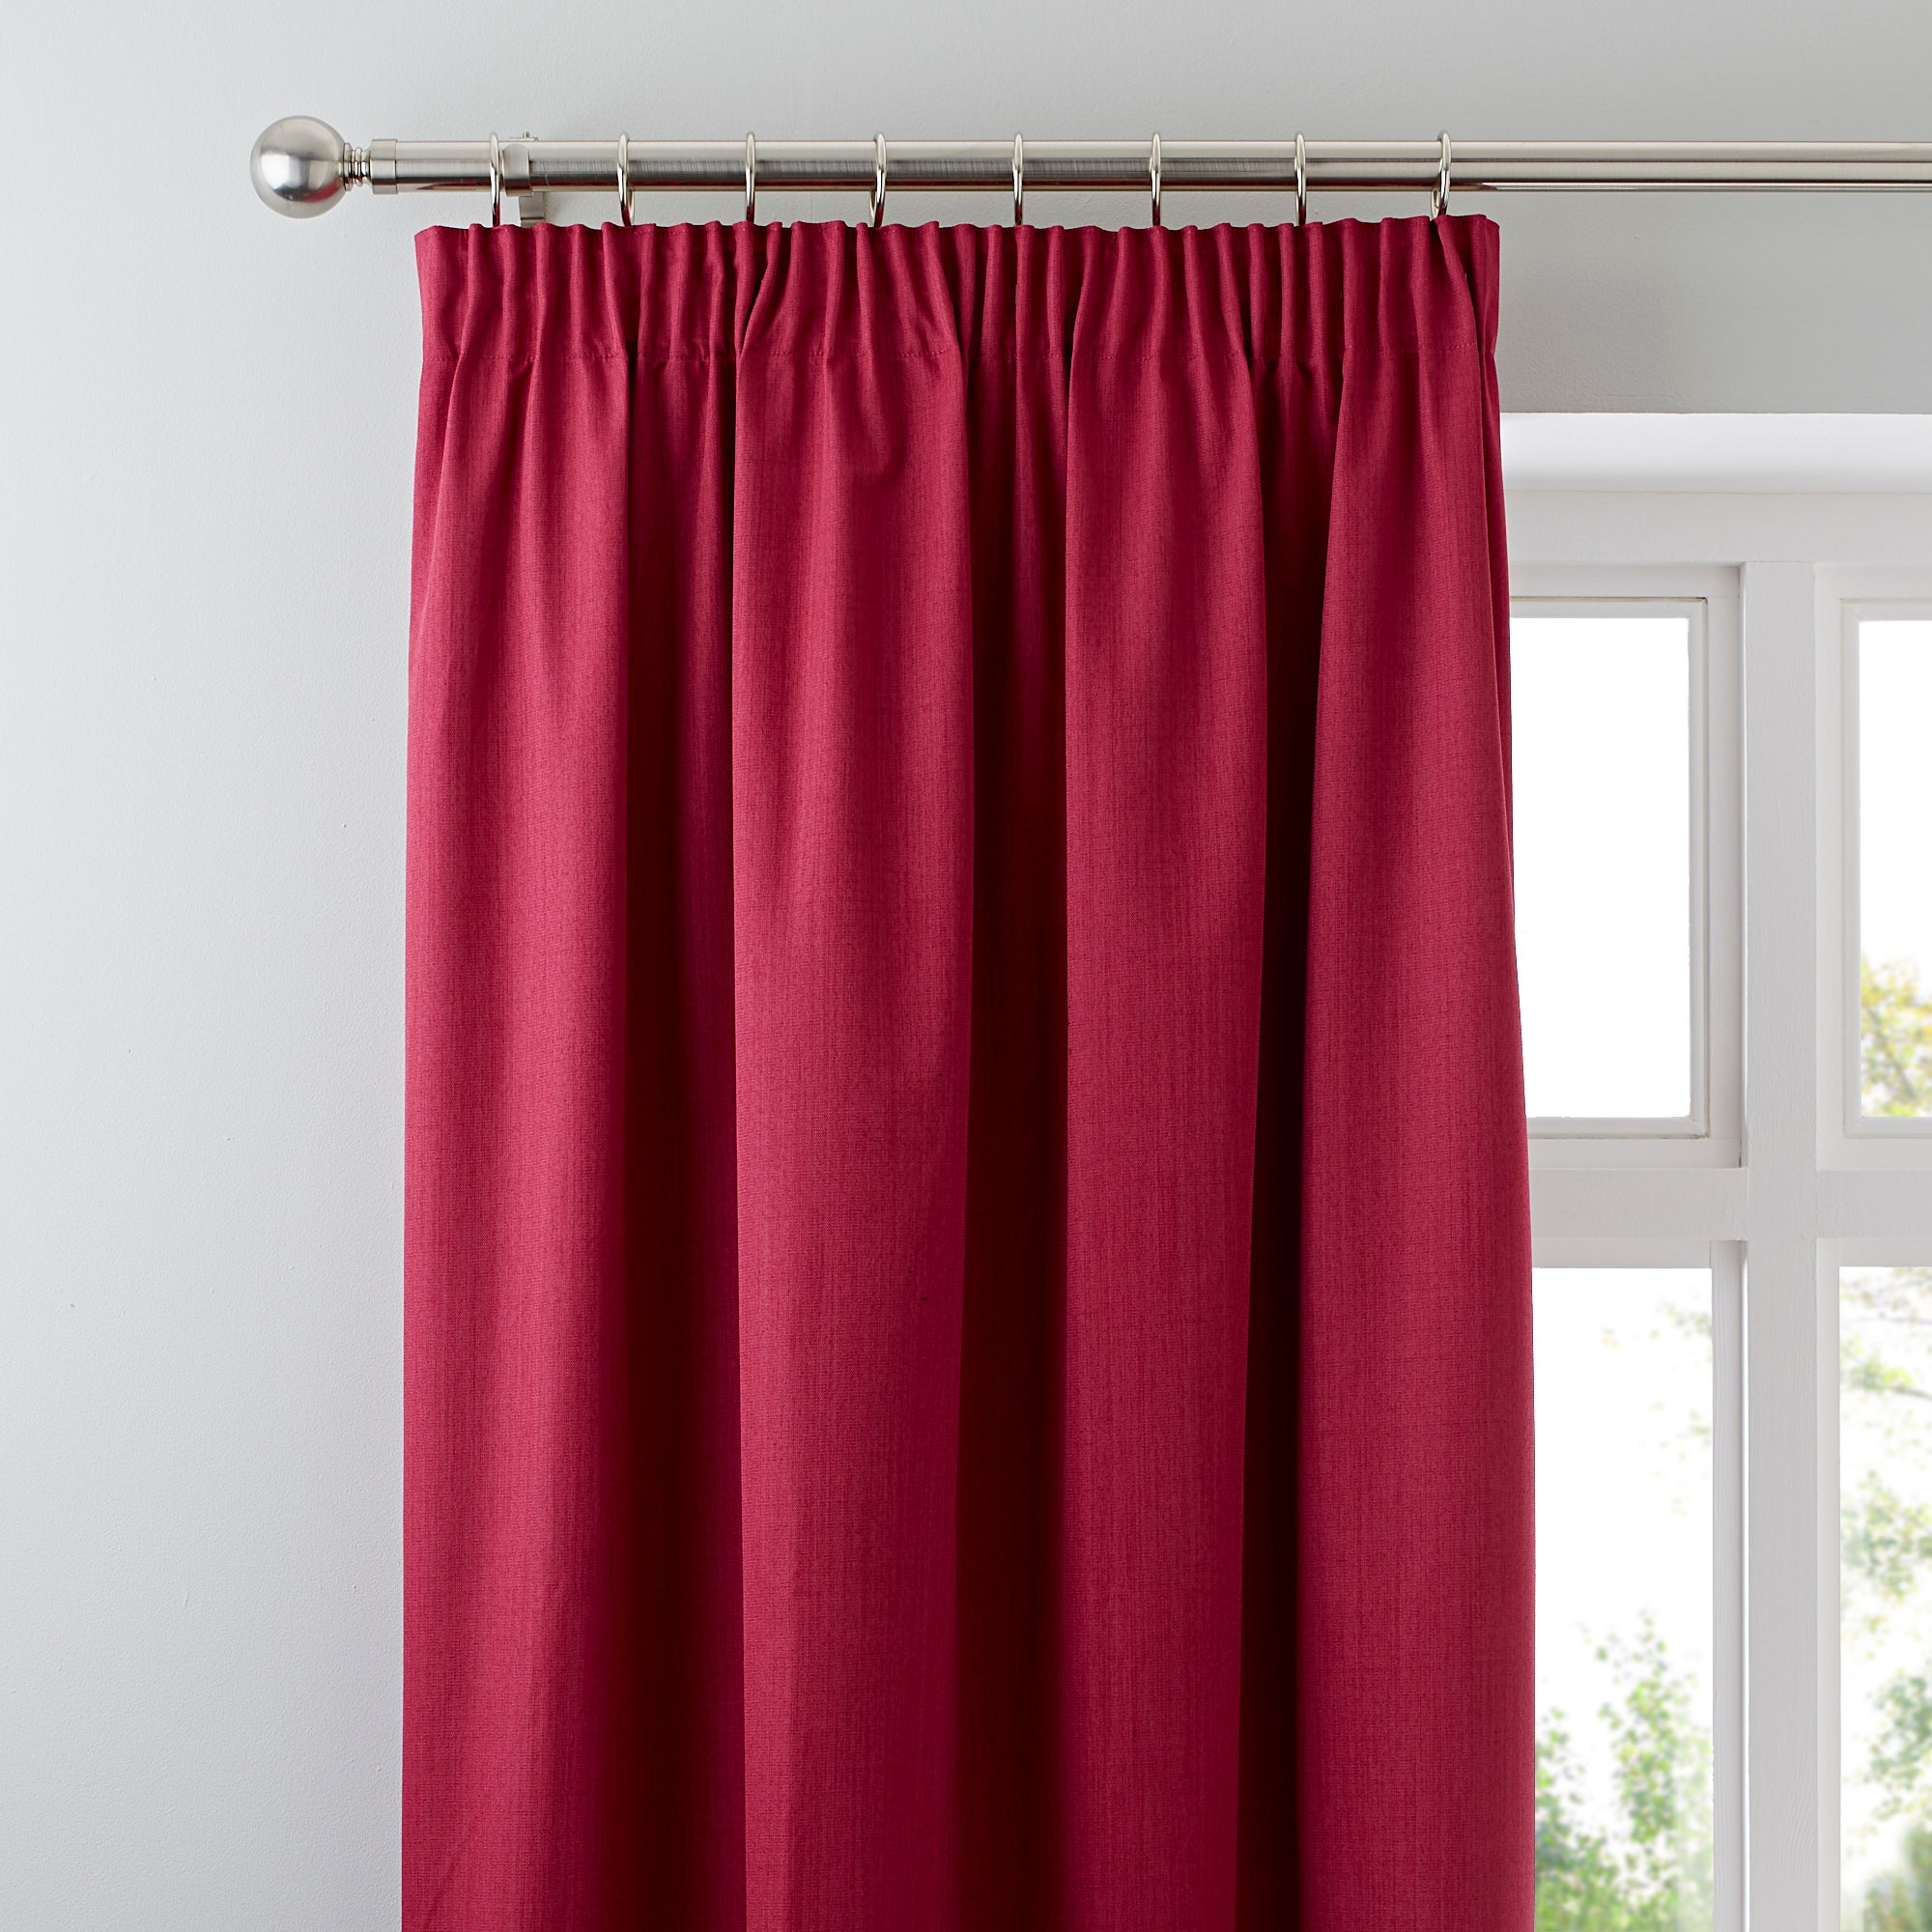 Waters and Noble Fuchsia Solar Blackout Pencil Pleat Curtains